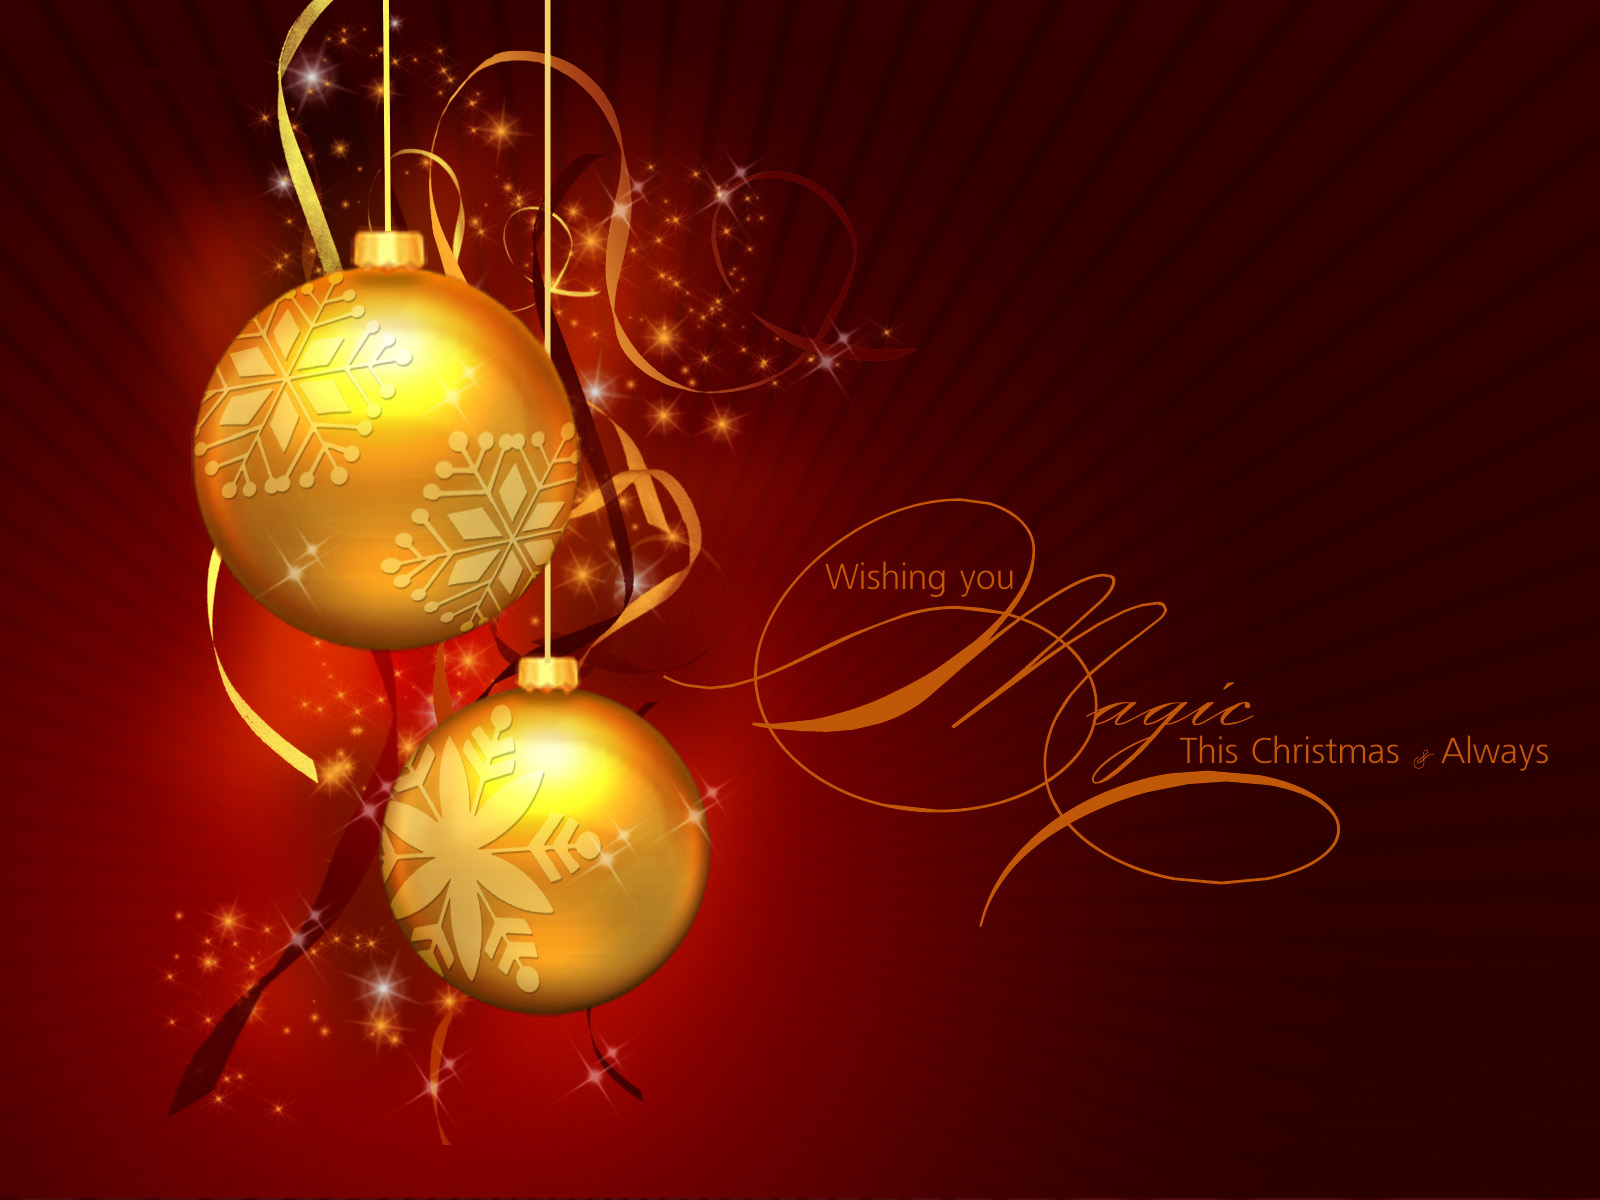 Downloadchristmas2010wallpaperchristmas2010pcwallpaper 1600x1200